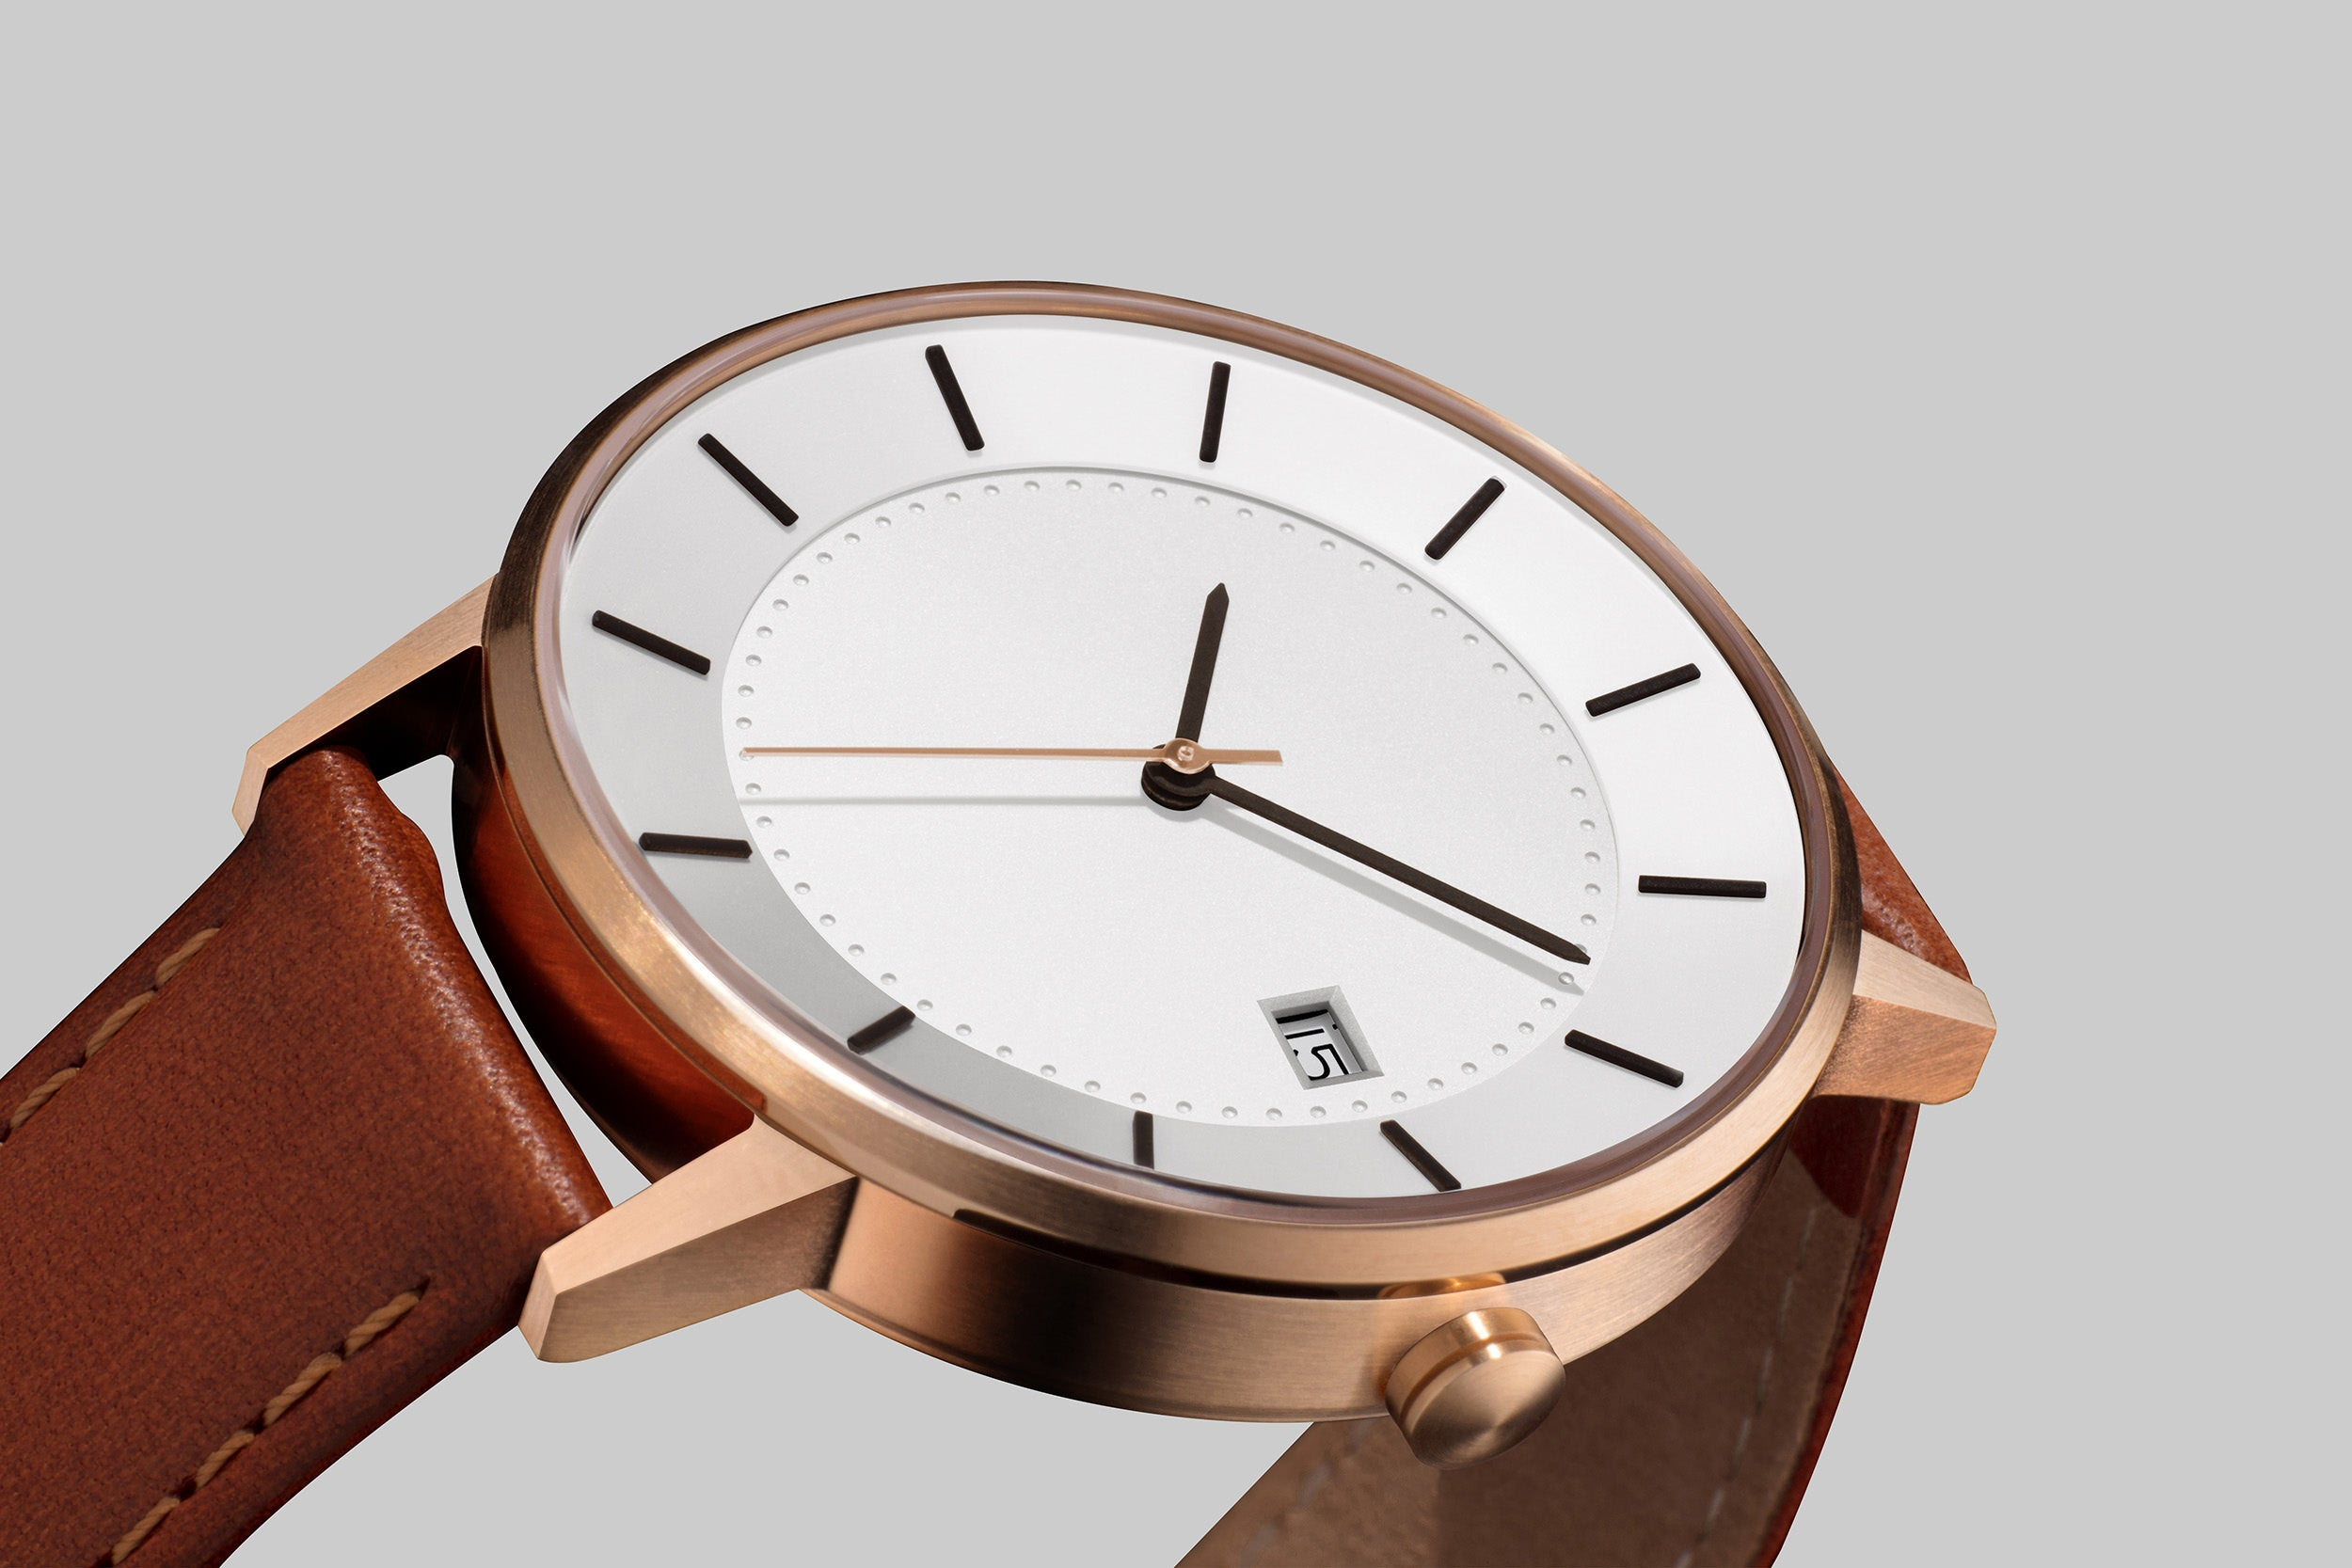 Wear not to what watch online exclusive photo